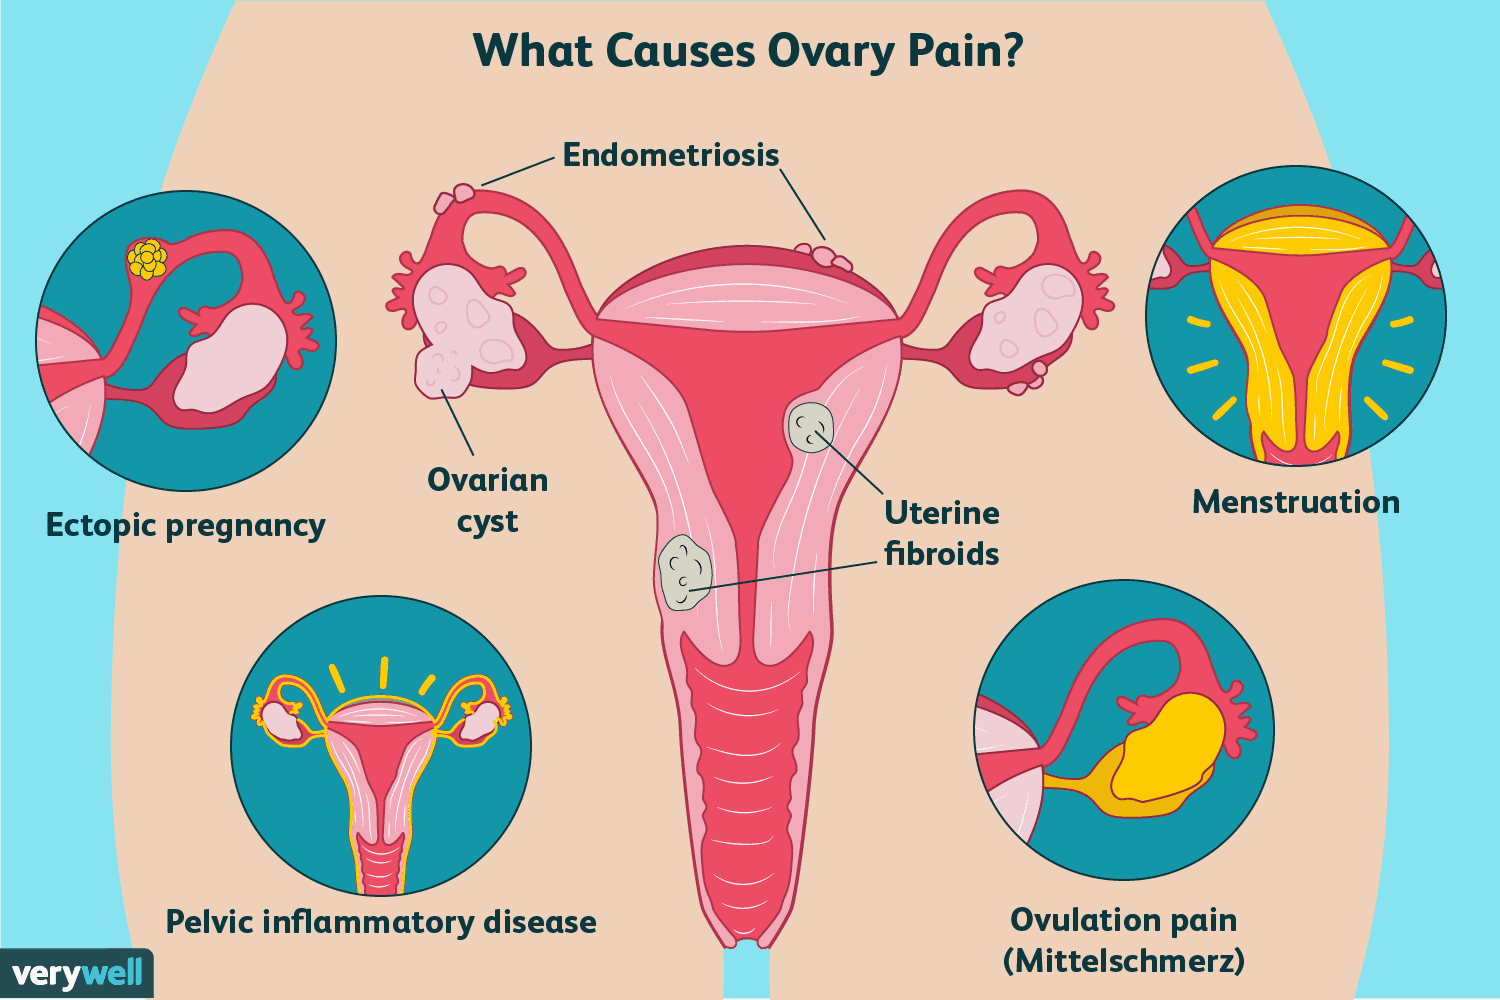 hight resolution of causes of ovary pain illustration